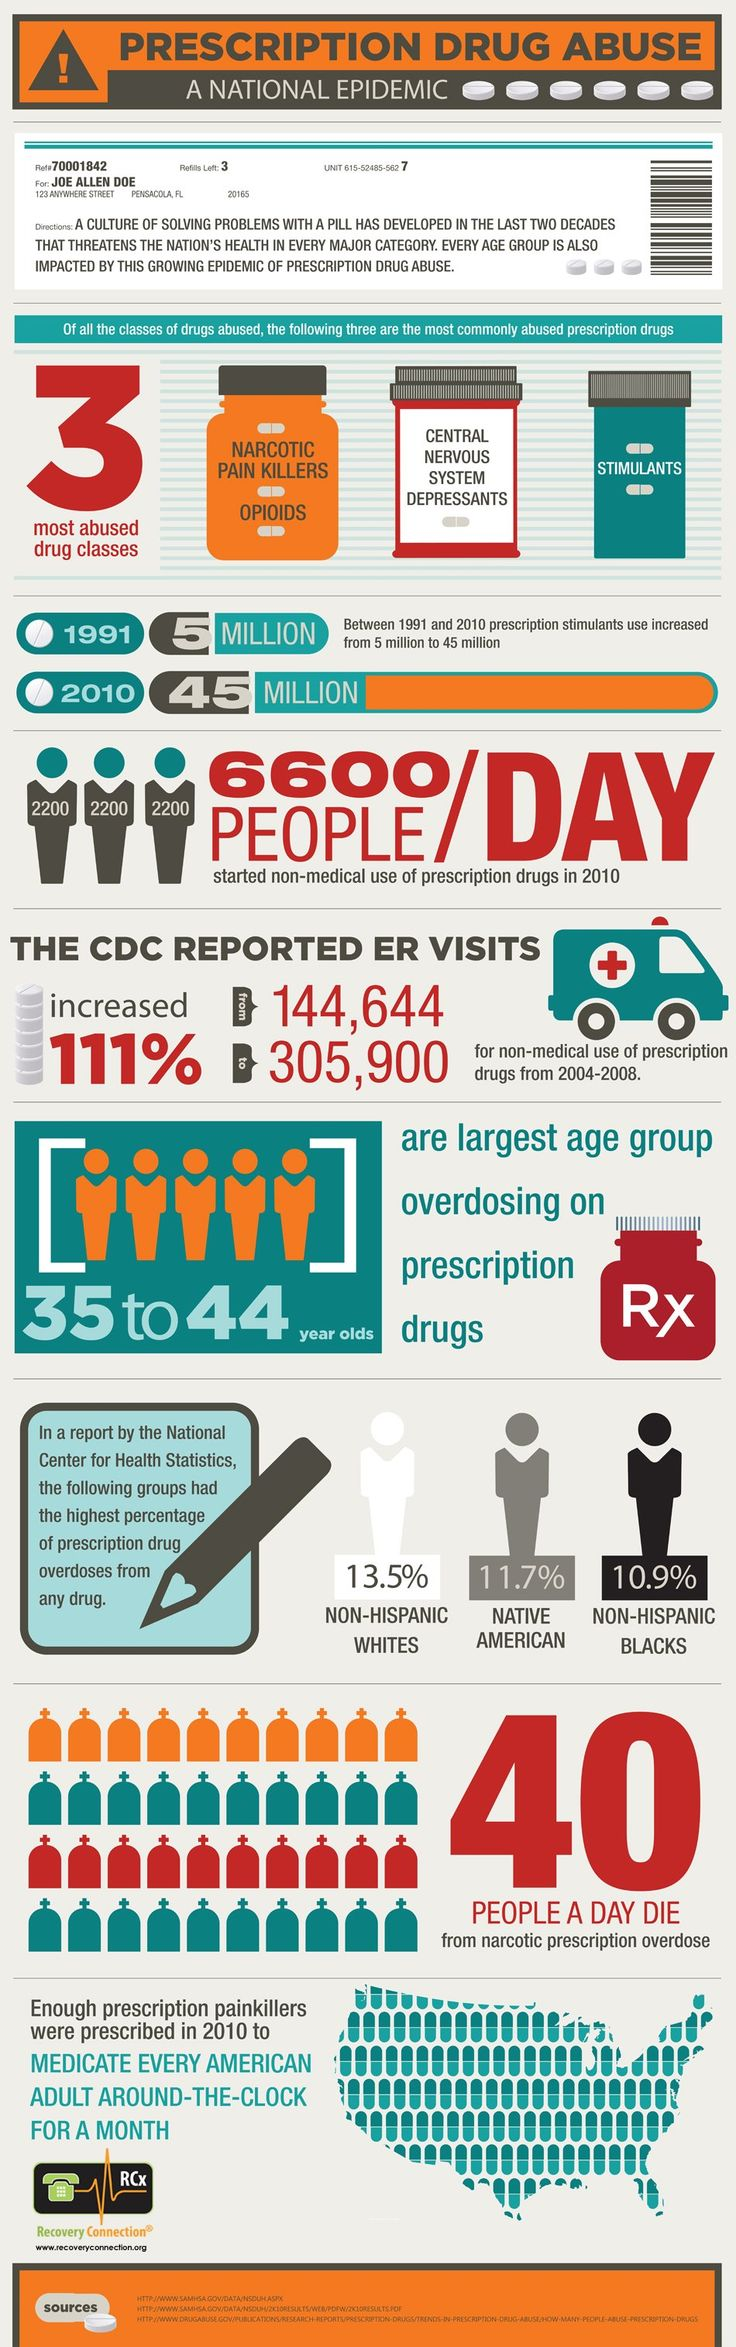 17 best images about prescription drug abuse tis prescription drug abuse infographic new visions healthcare blog healthcoverageally com